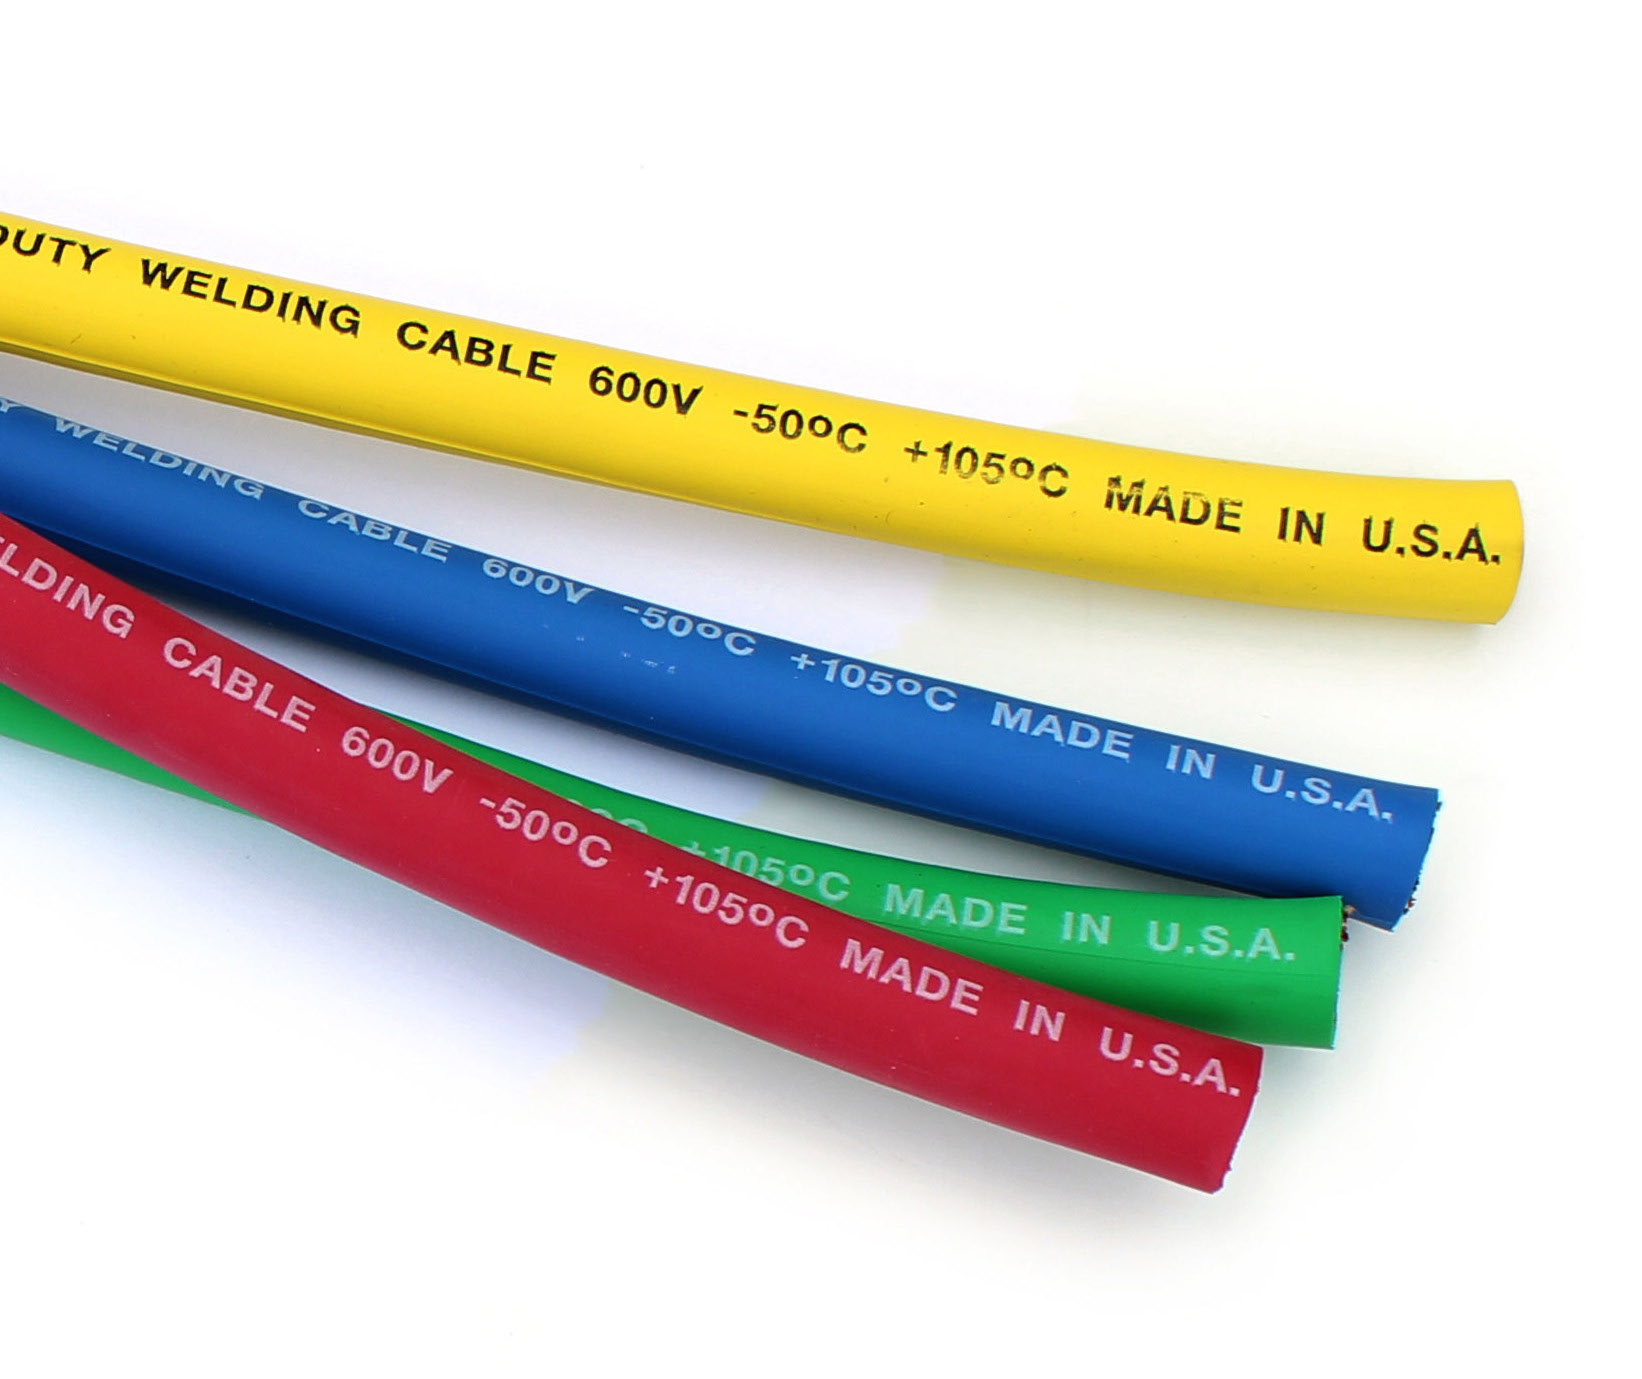 inetparts.com, Welding Cable Wire in Yellow Blue Orange Green Black ...